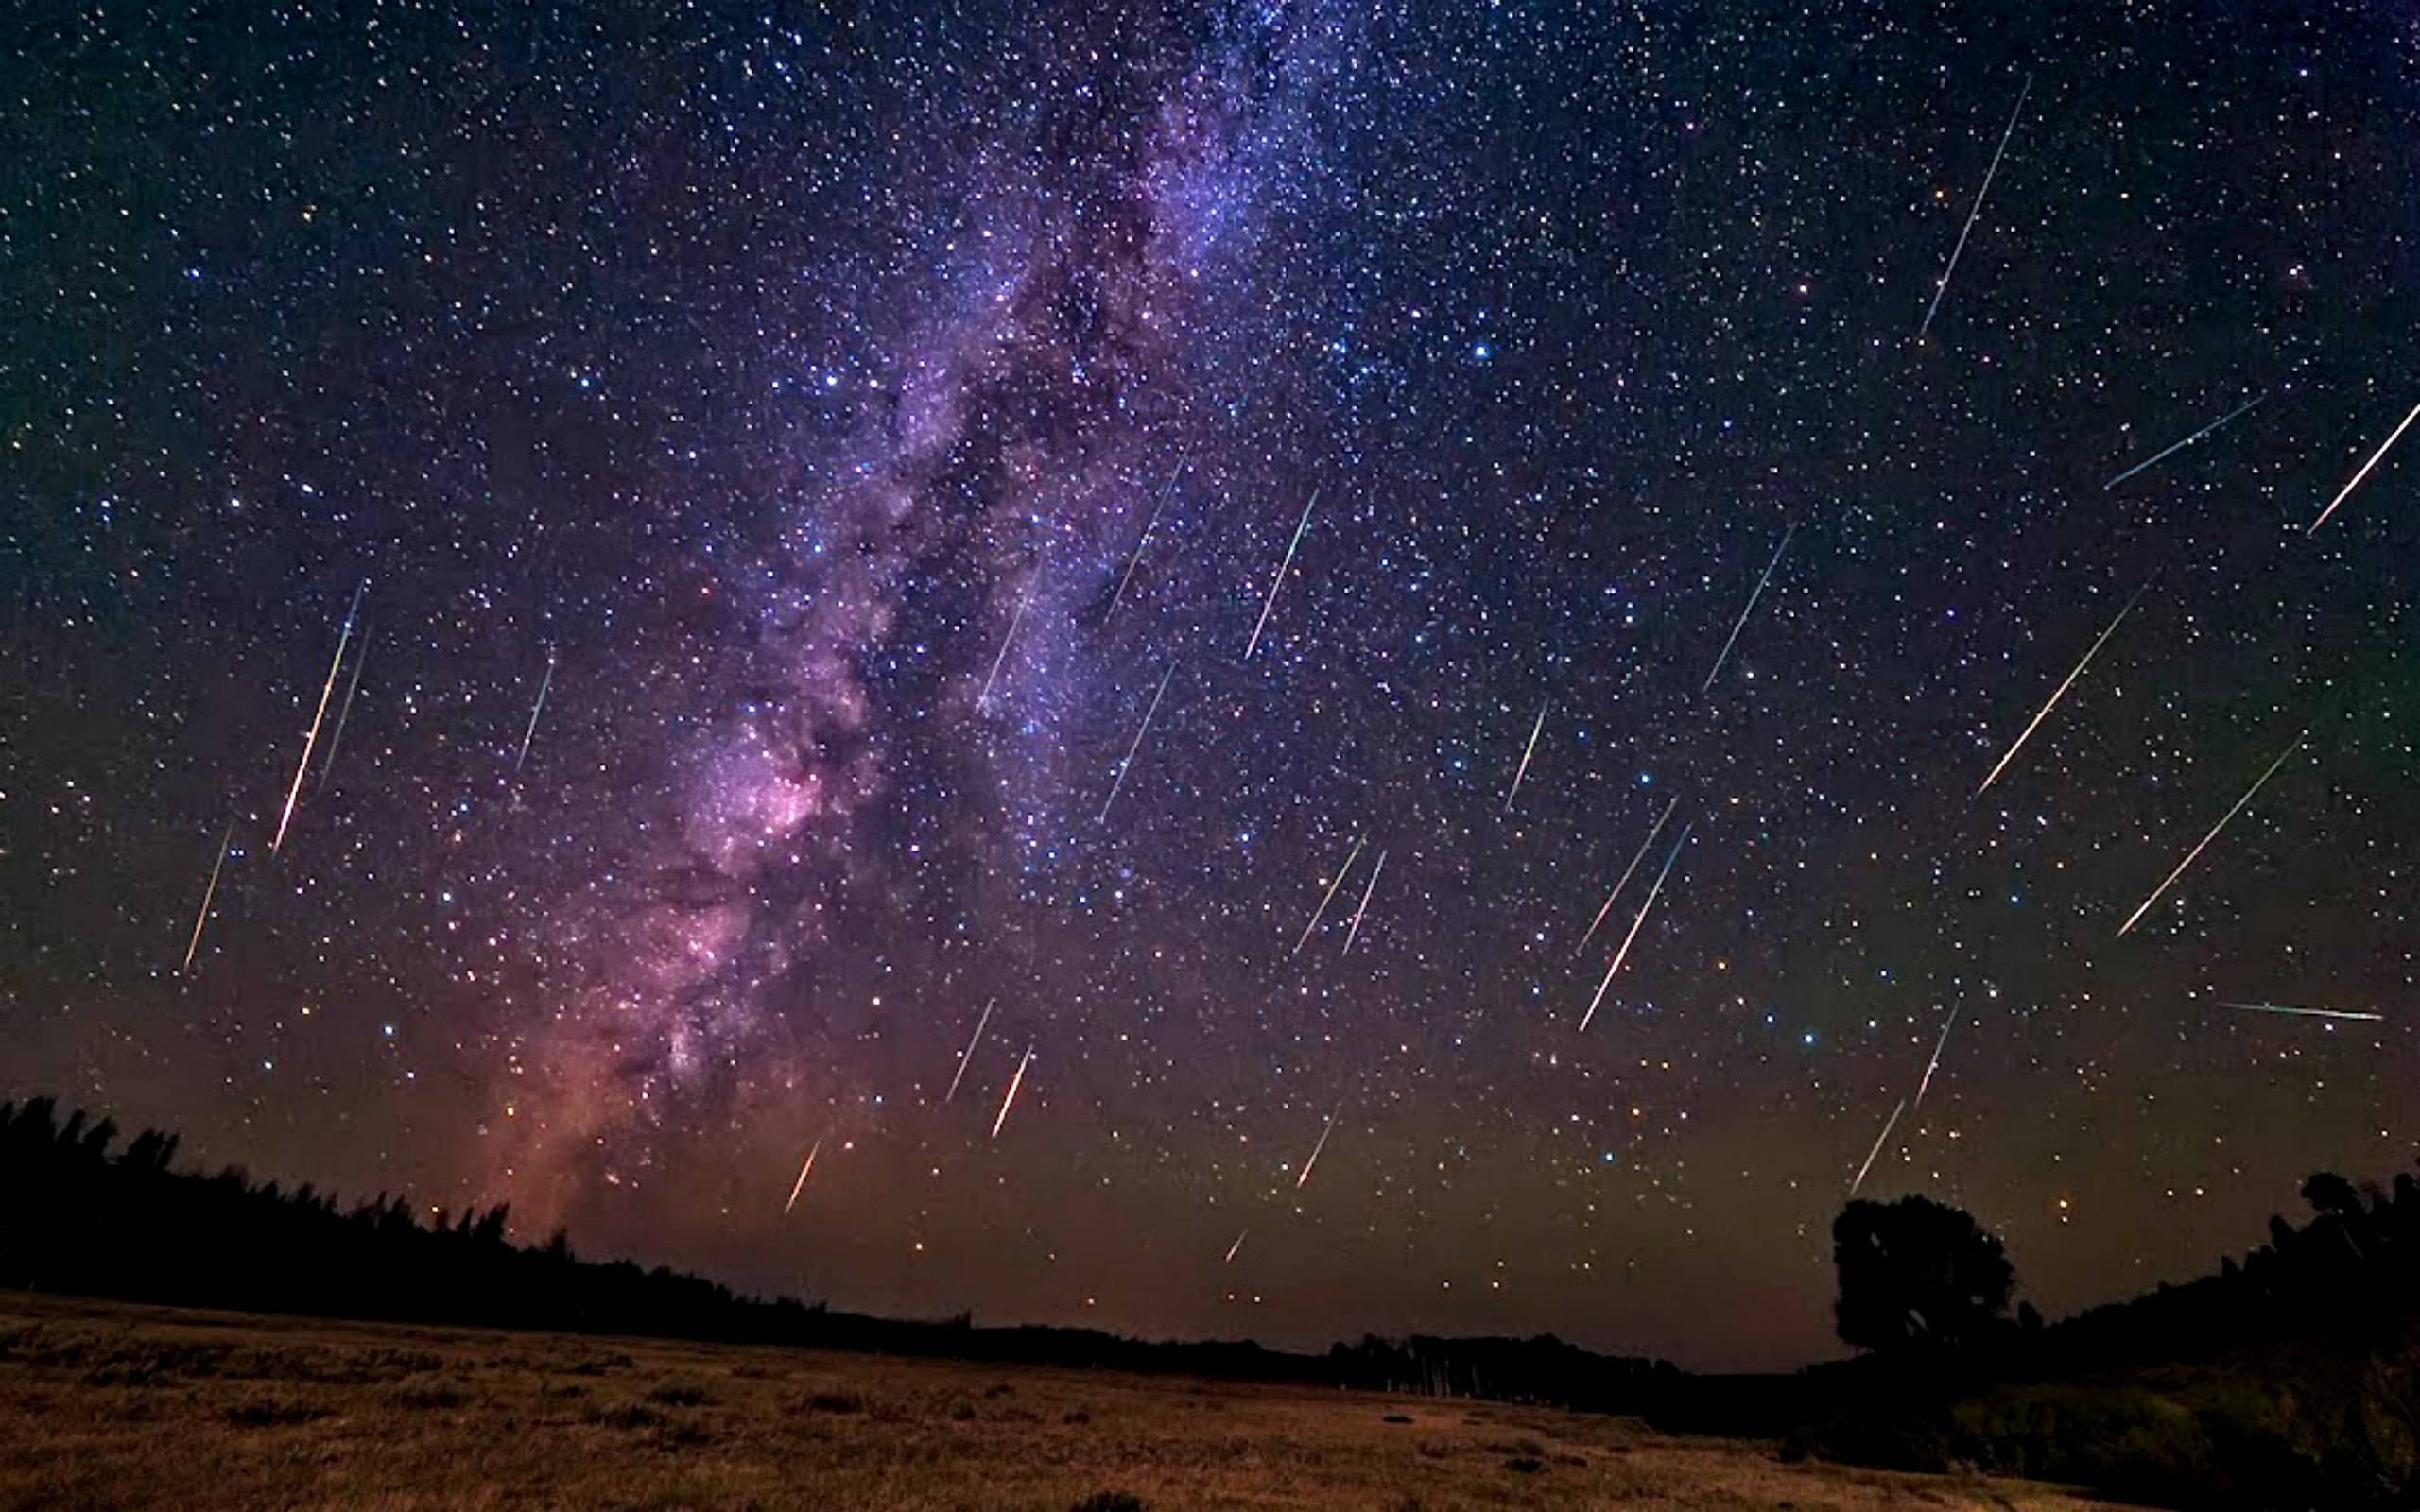 Meteor Shower Wallpapers and Background Images - stmed.net